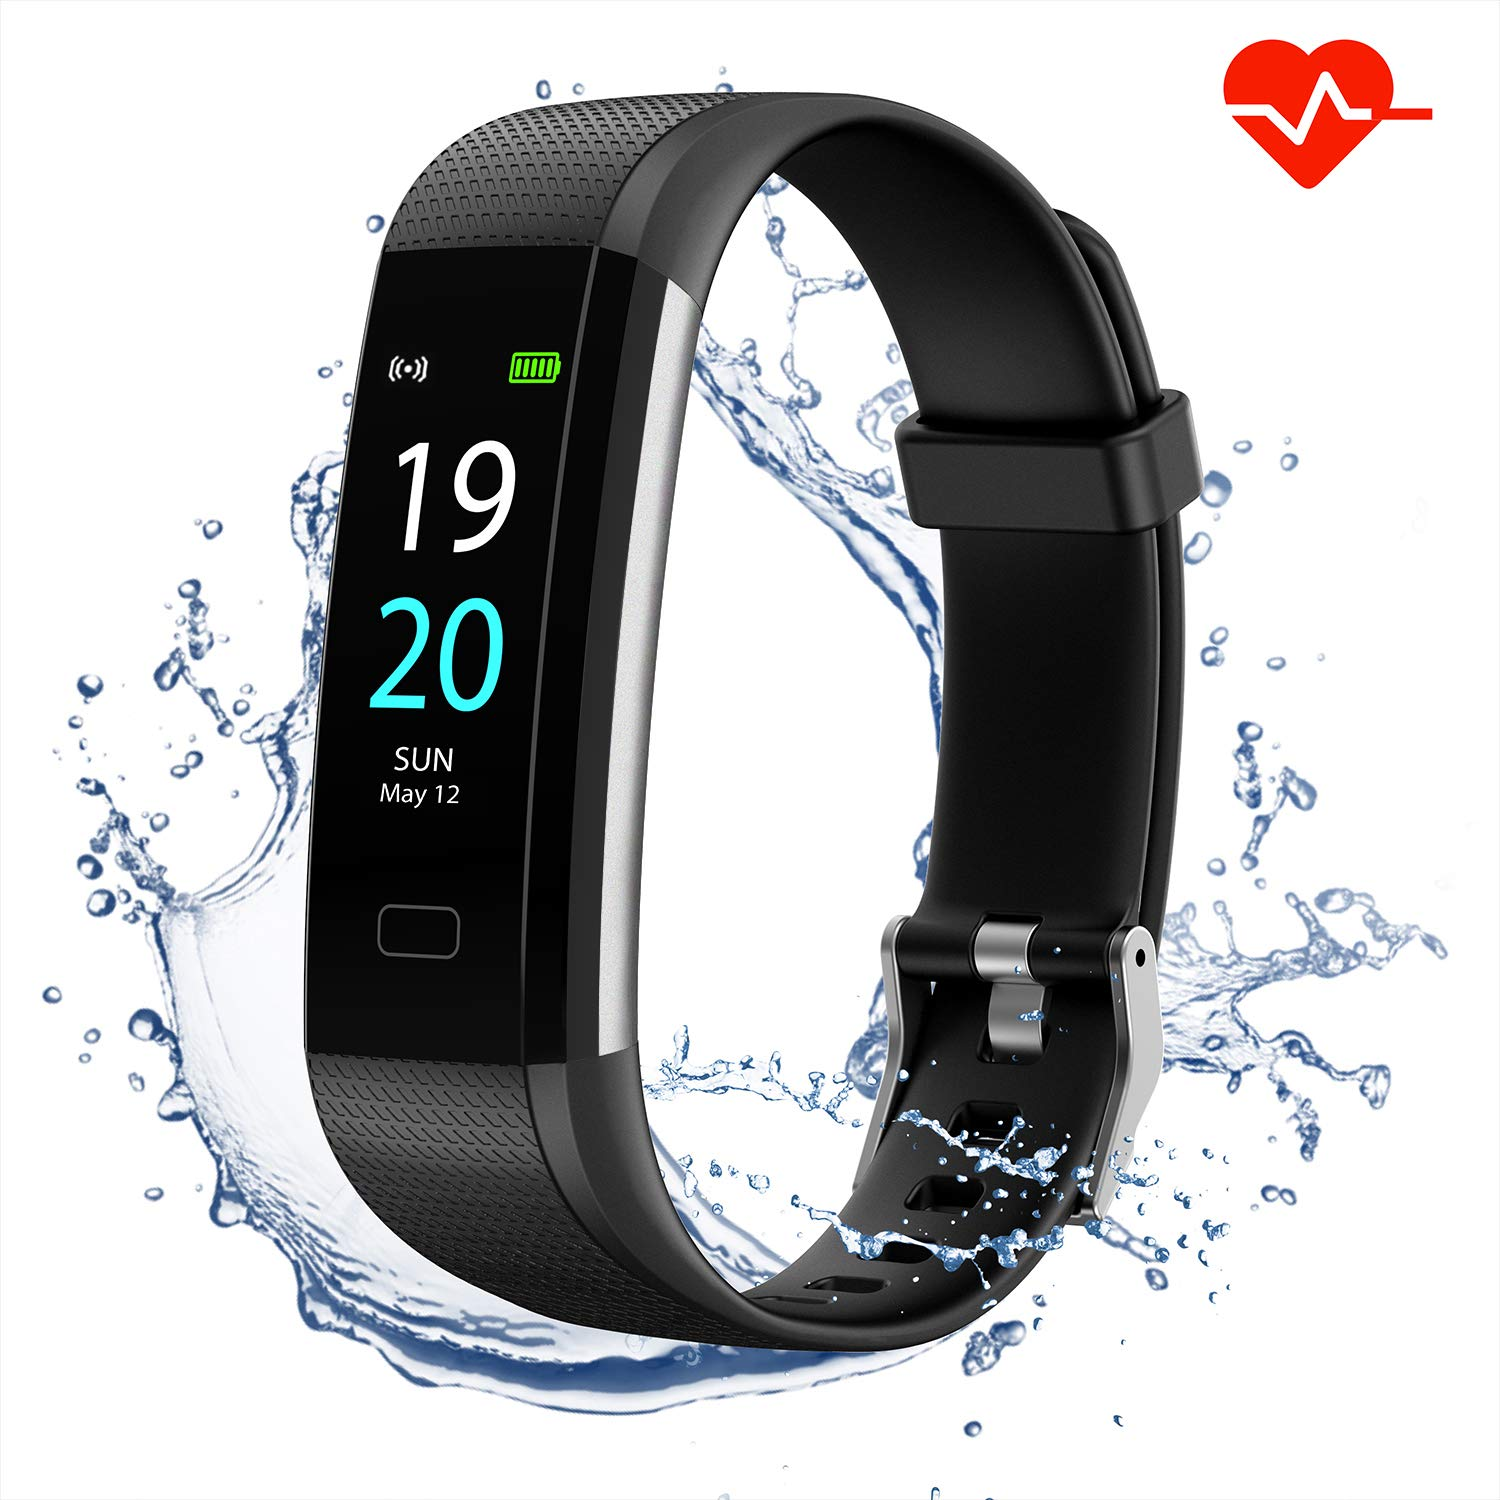 Akasma Fitness Tracker HR, S5 Activity Tracker Watch with Heart Rate Monitor, Pedometer IP68 Waterproof Sleep Monitor Step Counter for Women Men sleep trackers Sleep Trackers – Recommended Sleep Trackers on Amazon 71l5e0Uo36L